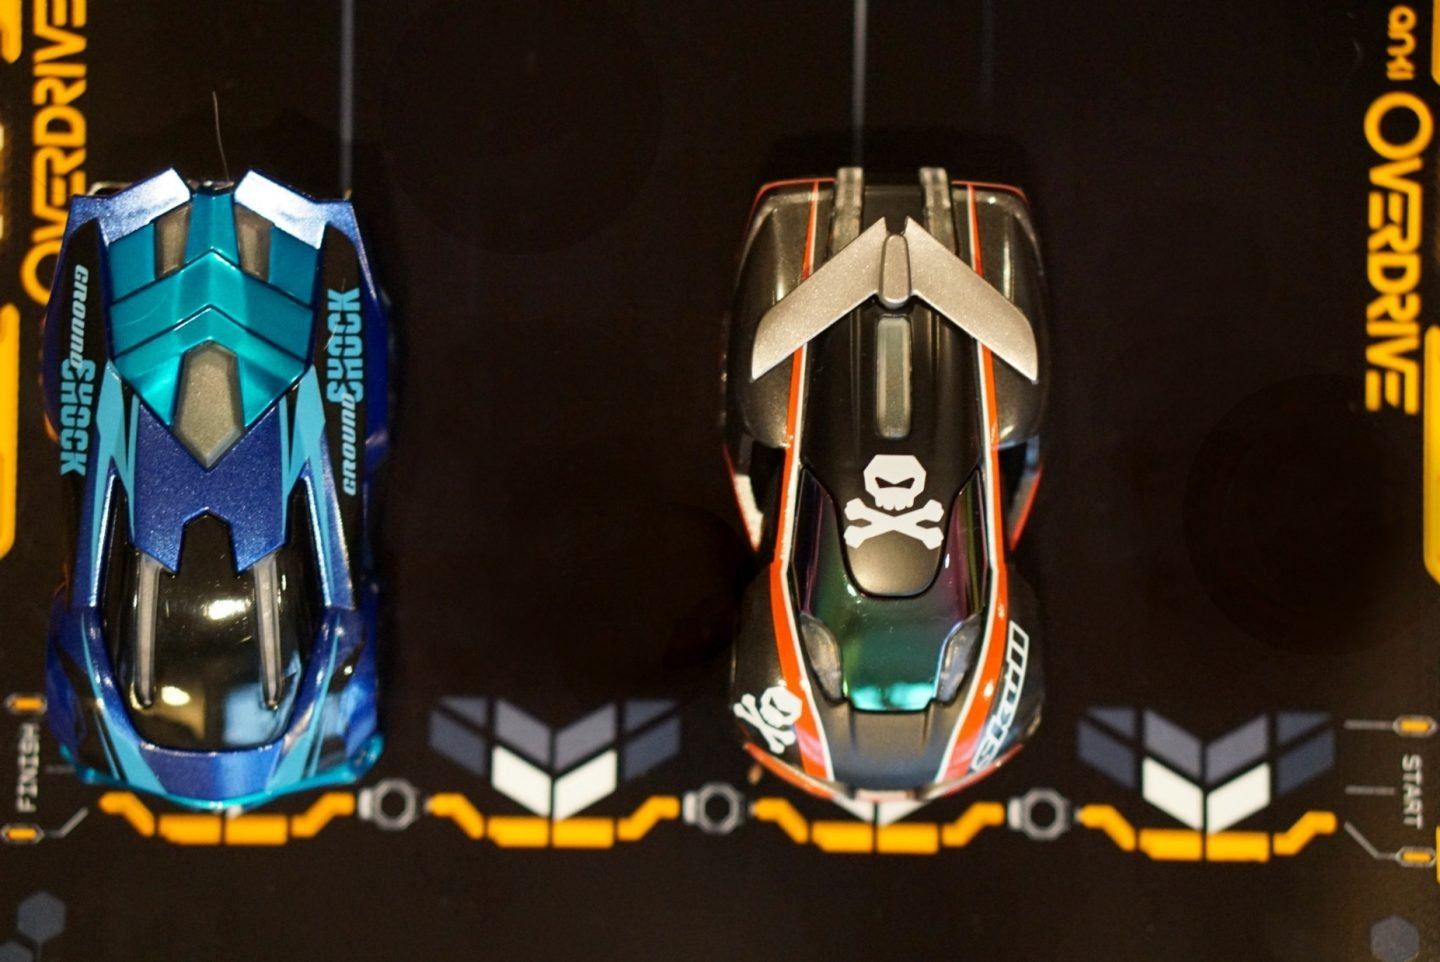 Anki Overdrive Review of this fab intereactive driving game